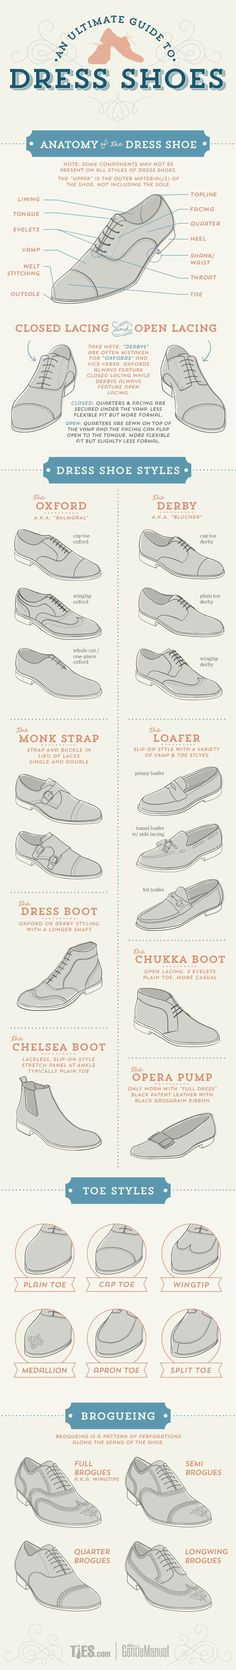 Shoe Dictionary. Closed and open lacing. Oxford, Derby, monk strap, loafer…